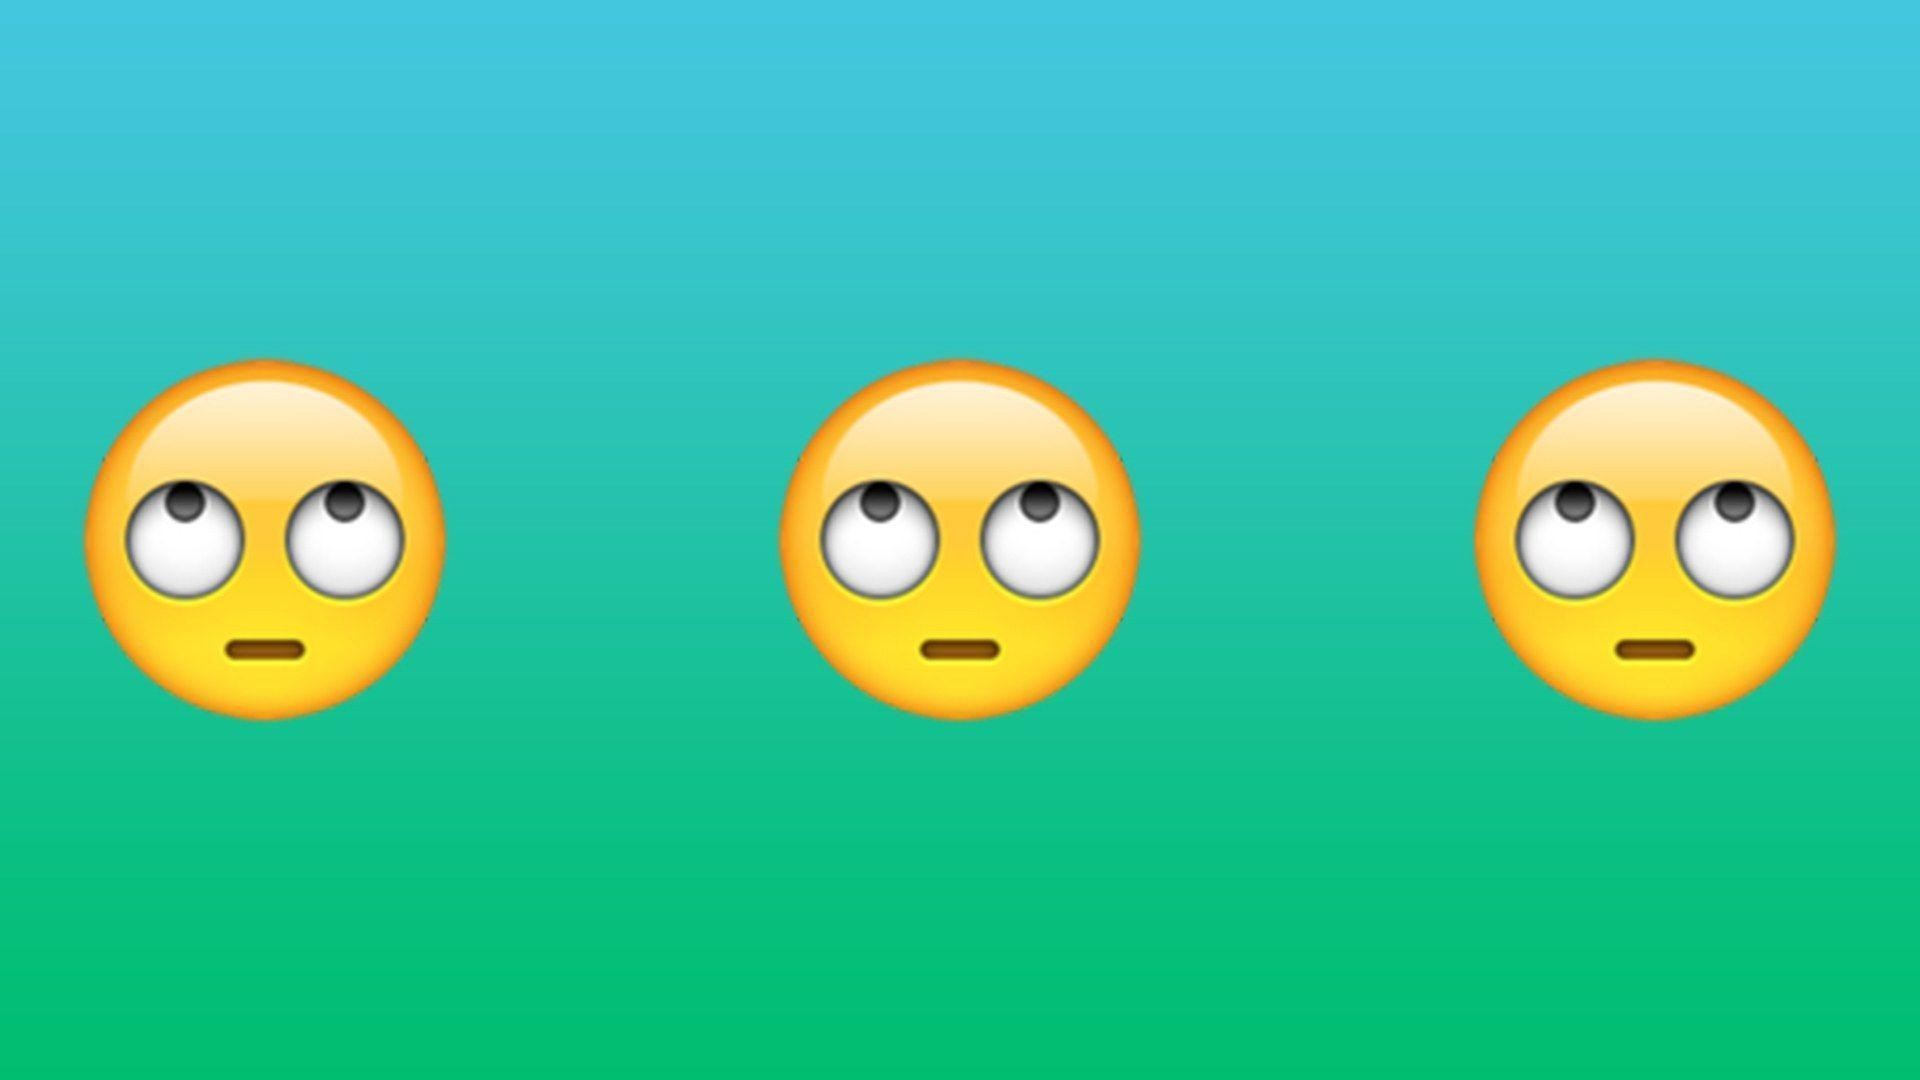 250 best images about Emoji backgrounds on Pinterest | Cosmetic .